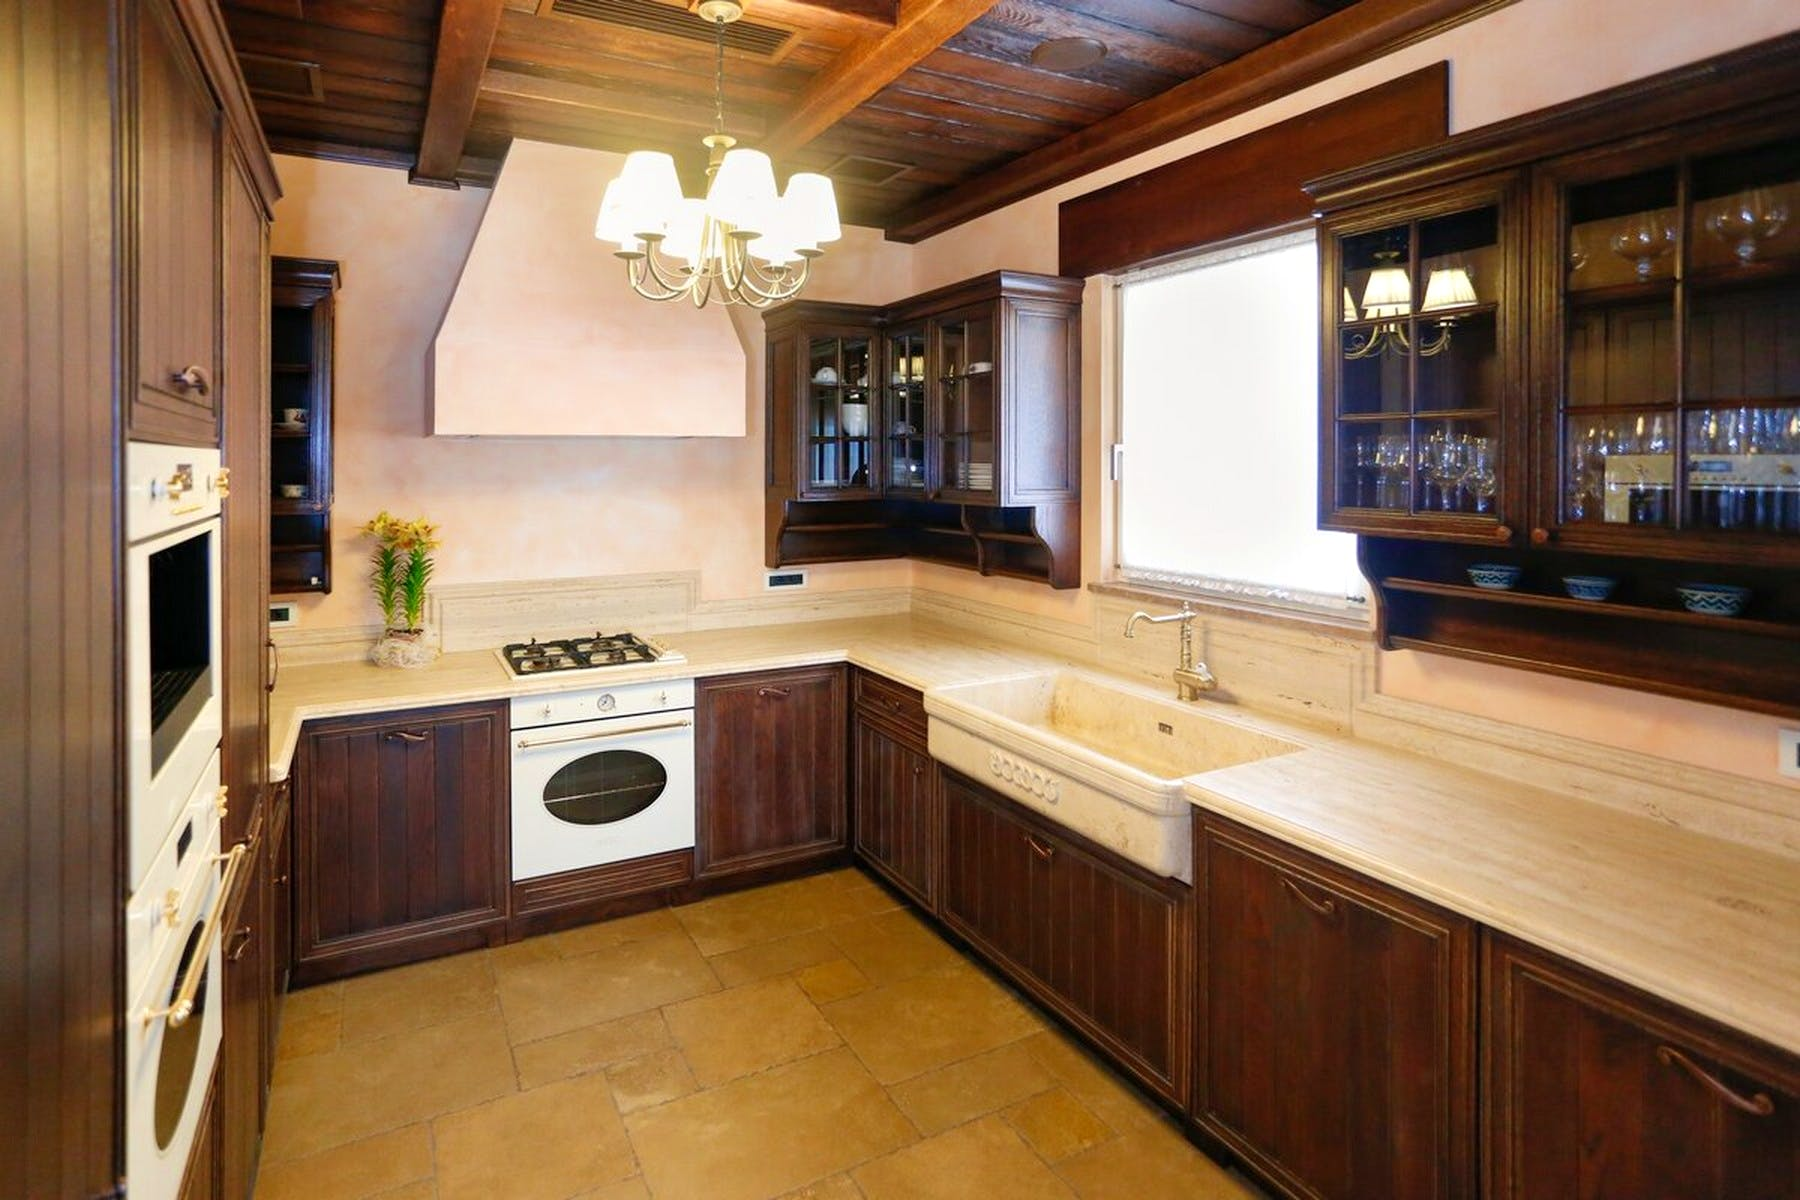 Large kitchen area with modern equipment